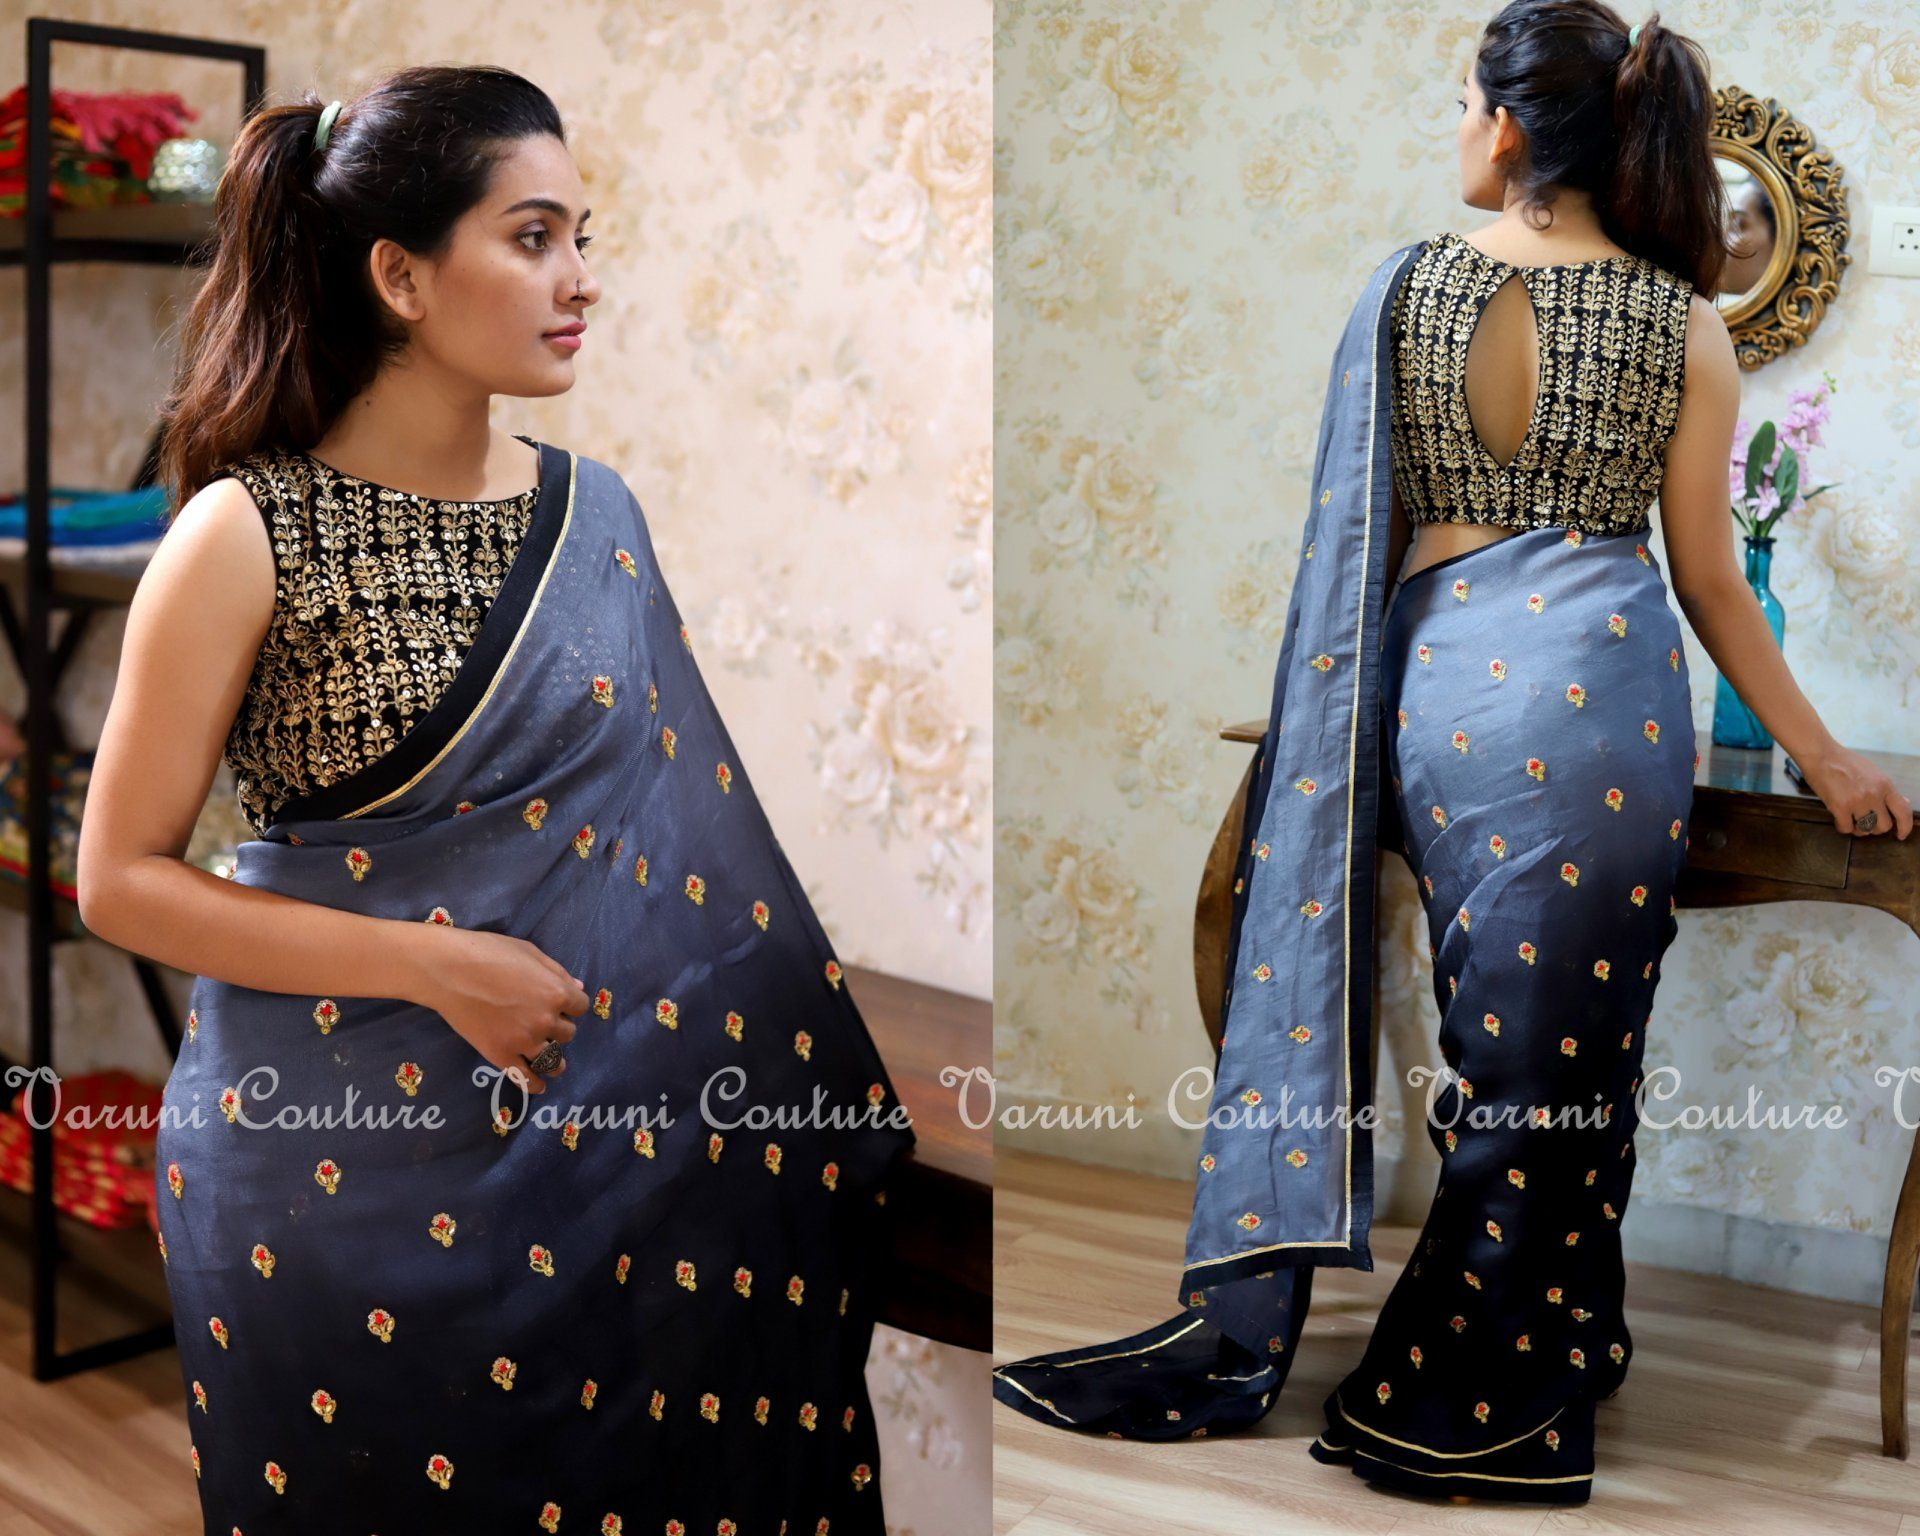 Boat neck lace wedding dress october 2018 Saree Code  Gray blackBlouse  As in the imagePrice  RsKindly